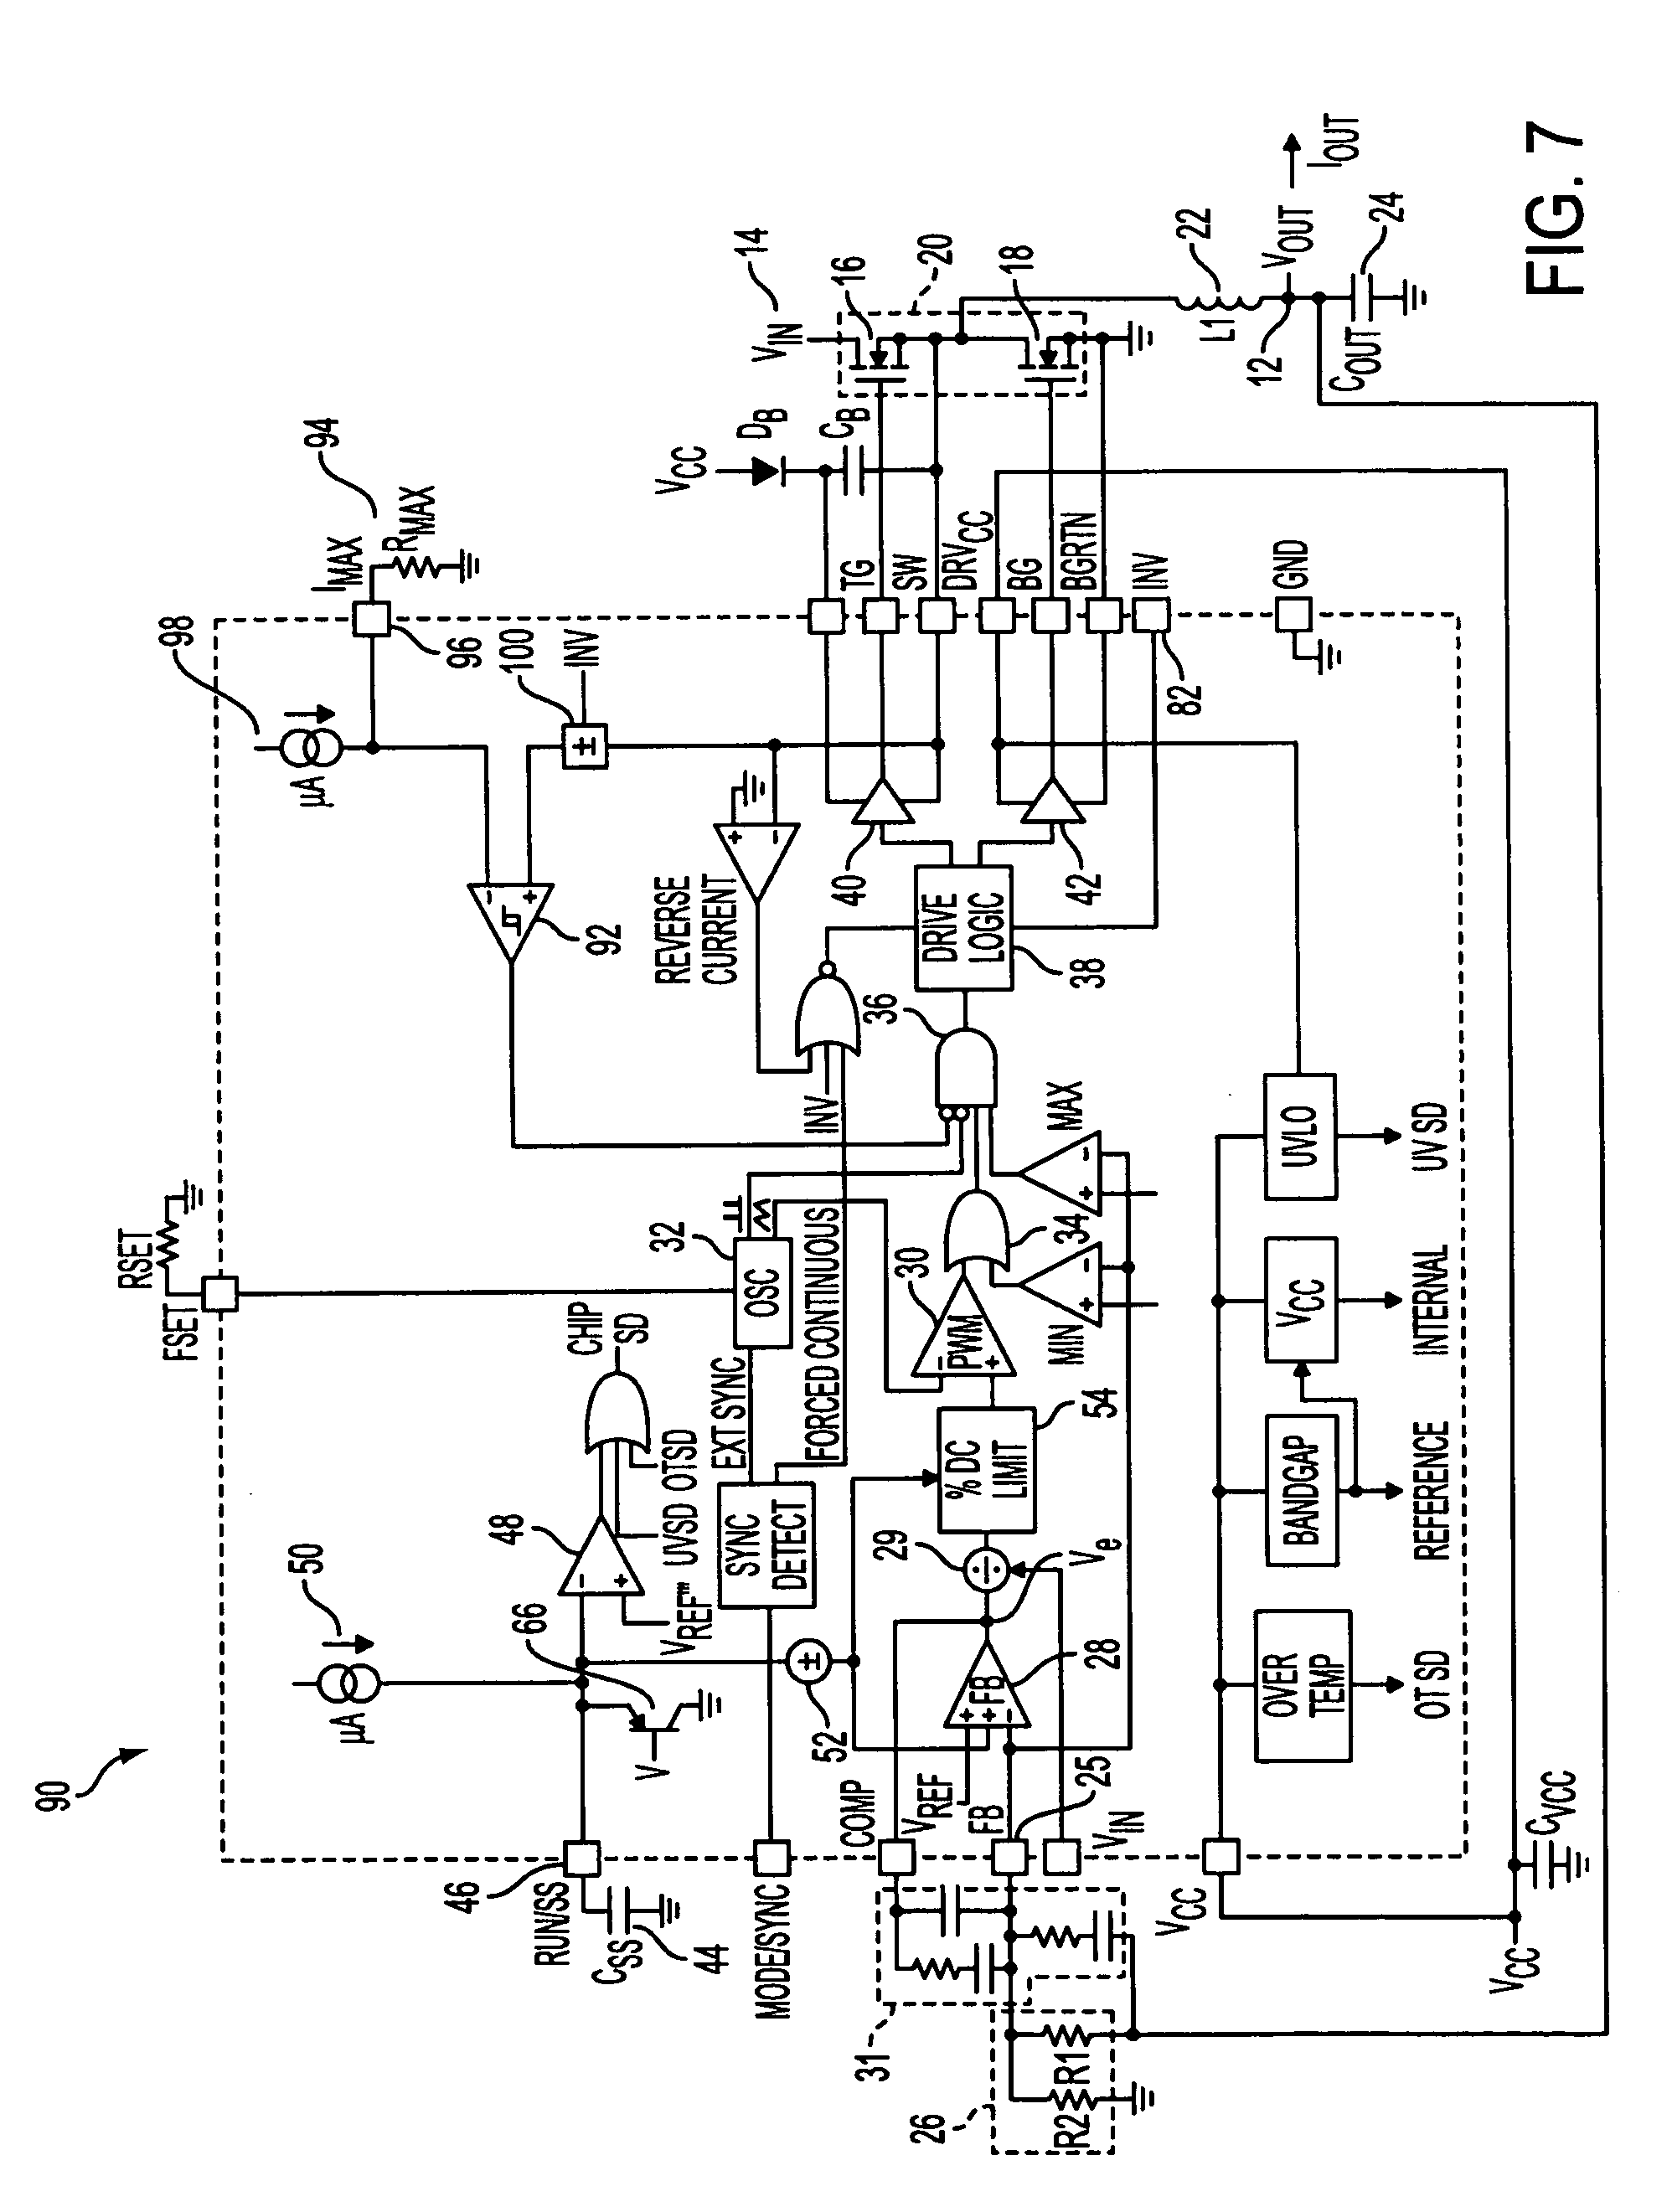 Patent Us7019507 Methods And Circuits For Programmable Current 3v To 5v Step Up Converter With Undervoltage Lockout By Lt1073 Drawing